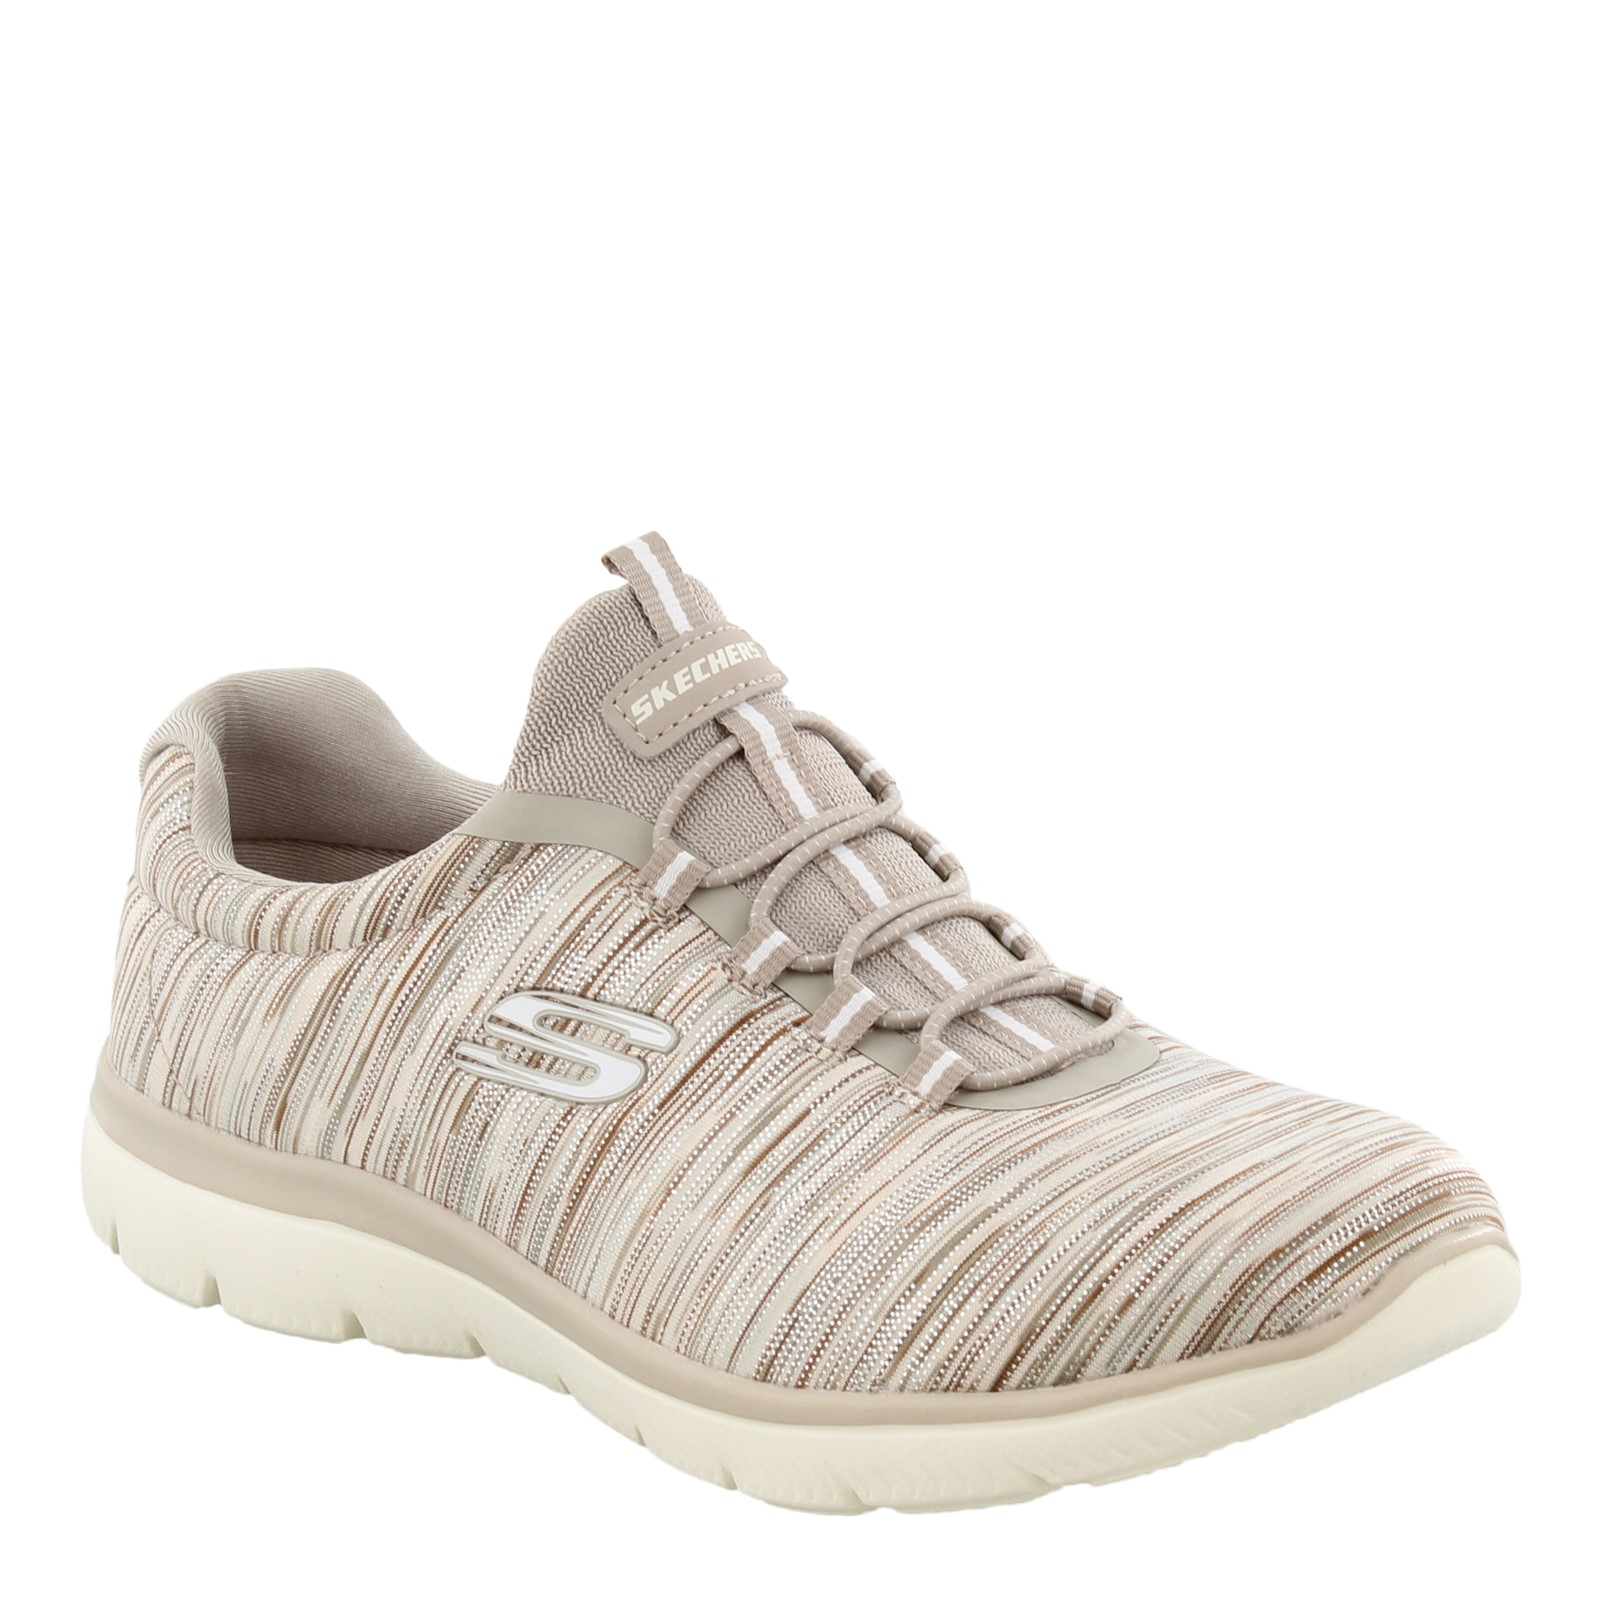 Women's Skechers, Summits Light Dreaming